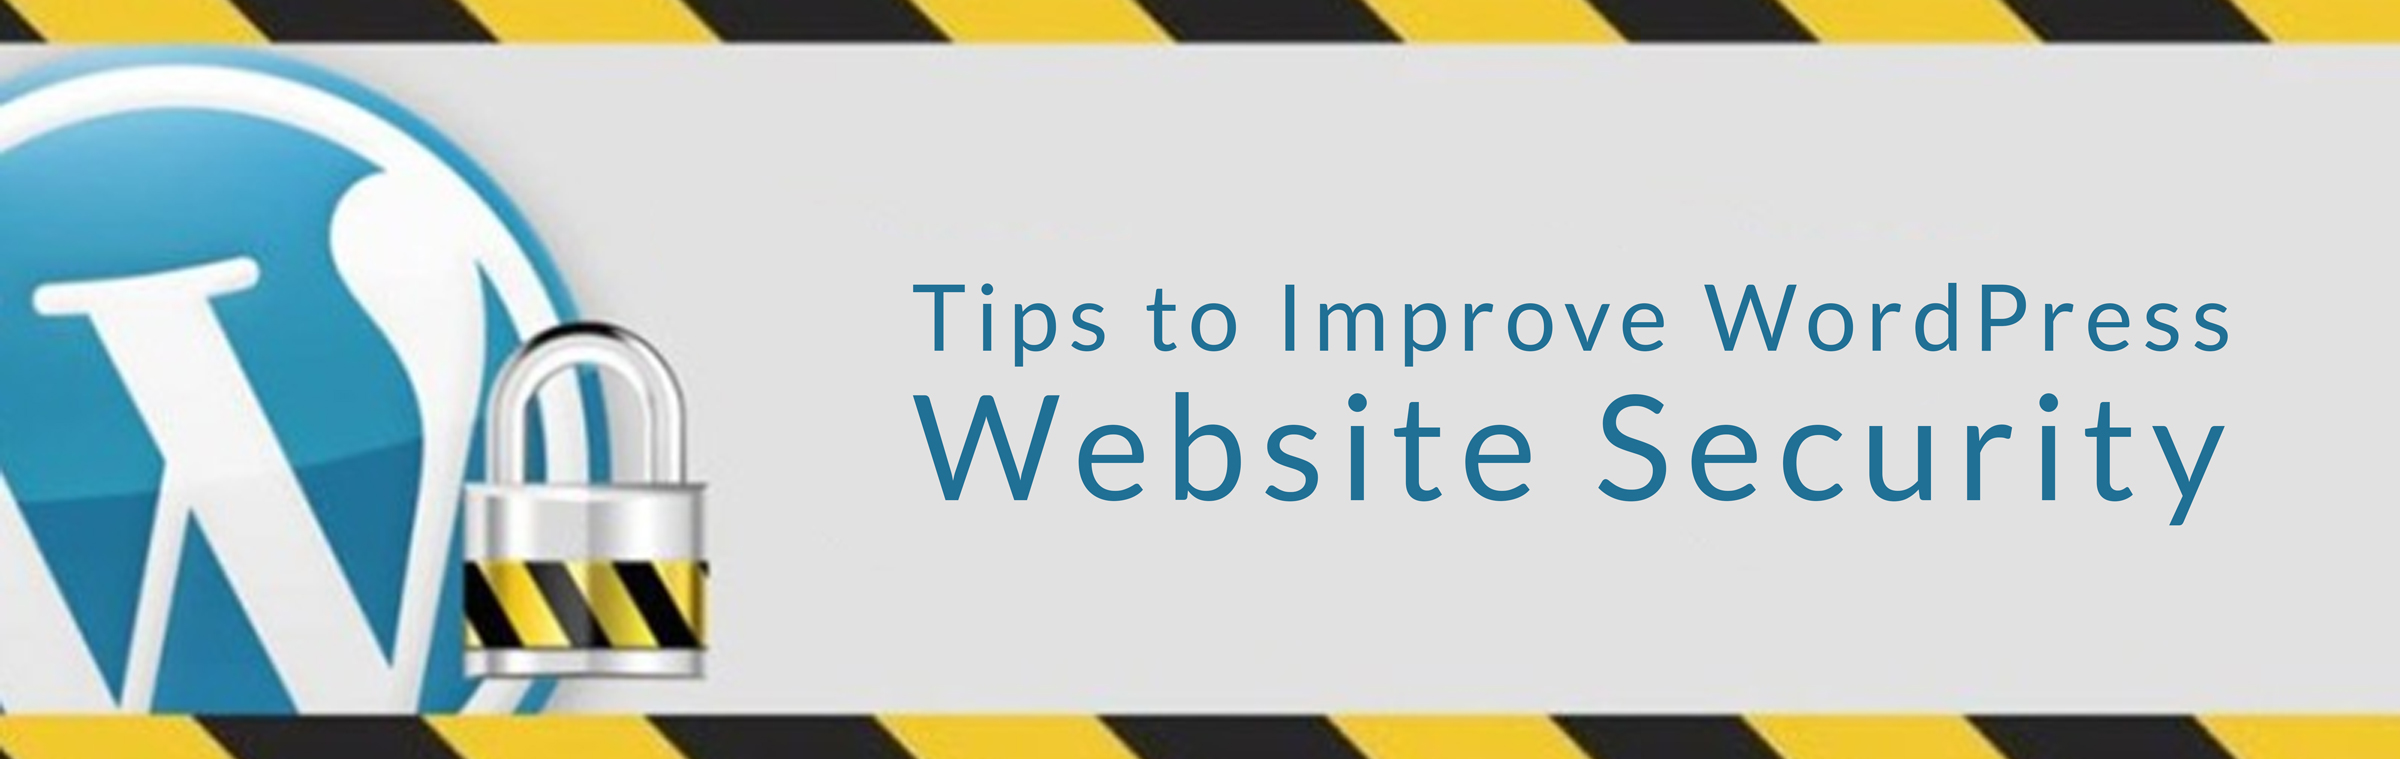 Tips to Improve WordPress Website Security